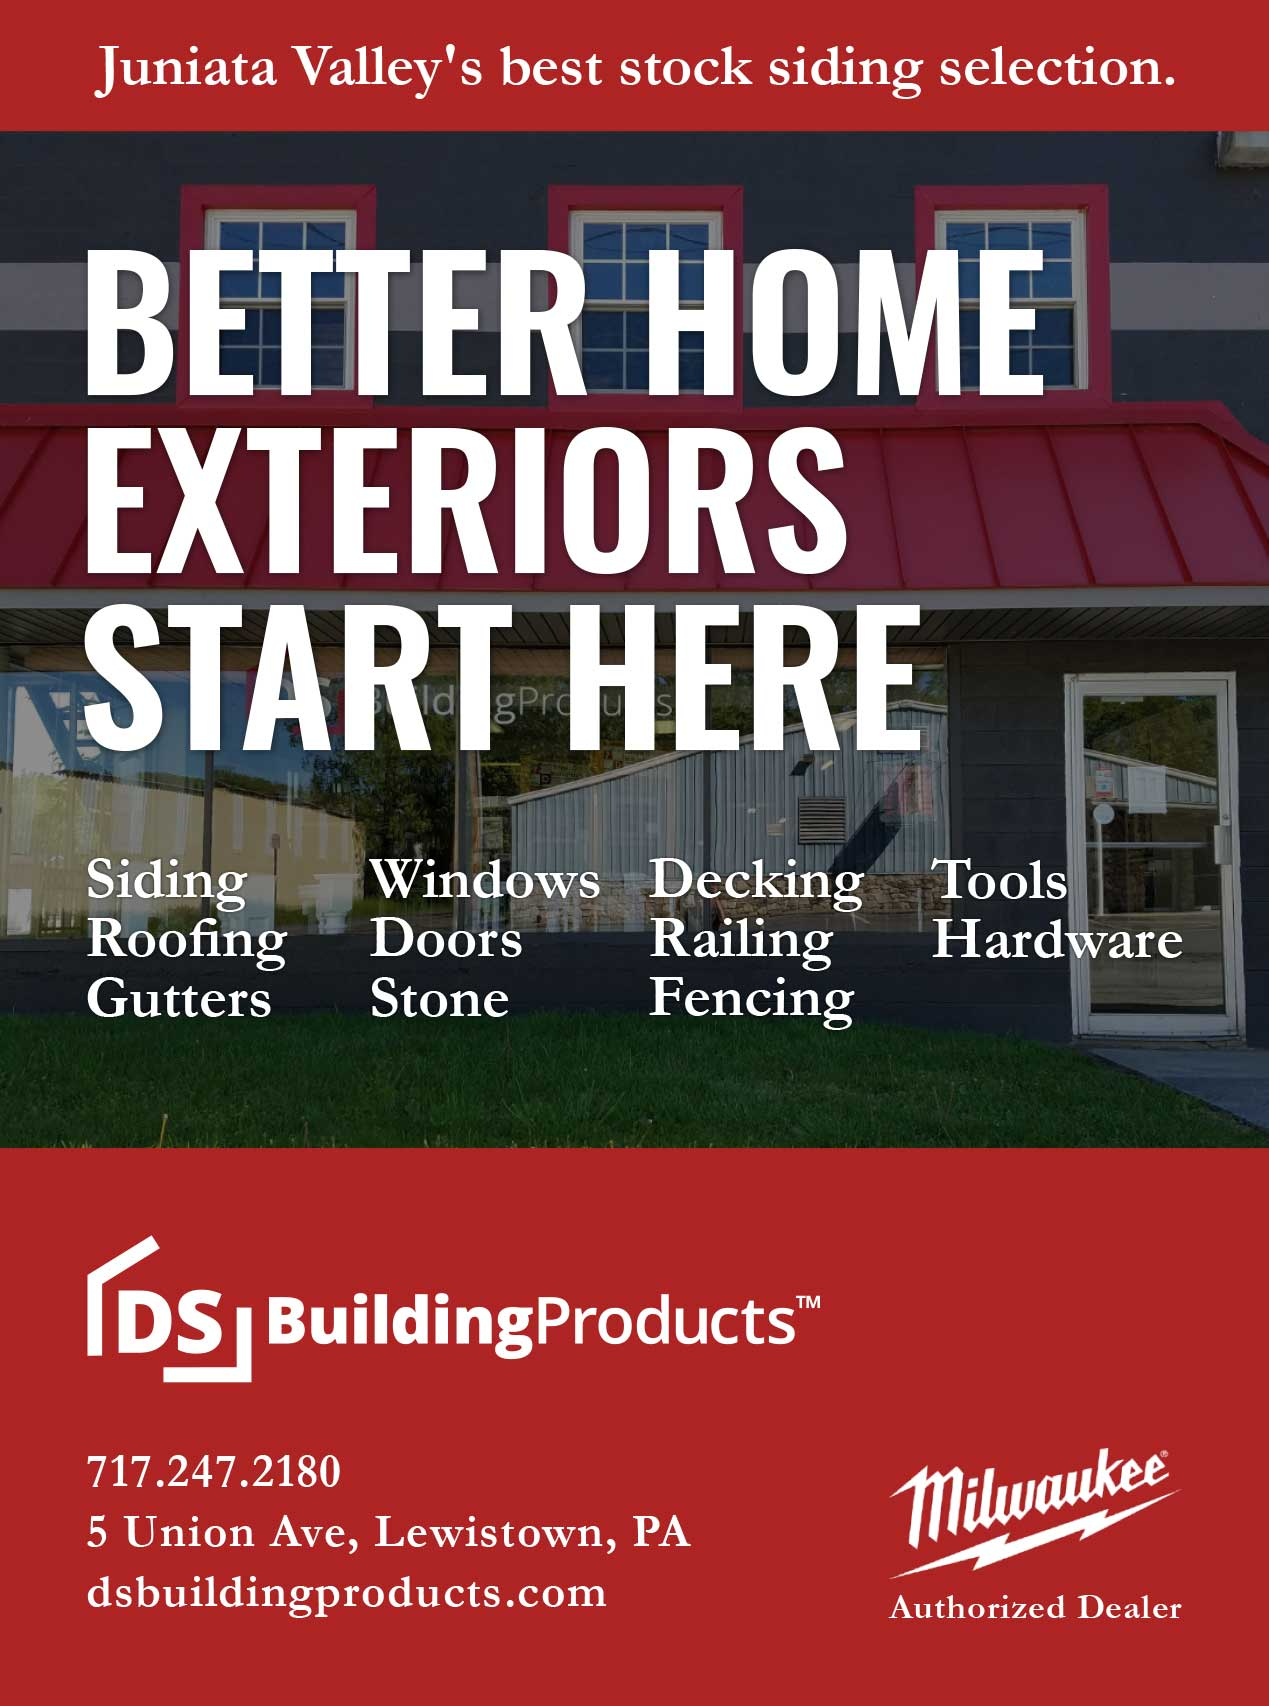 "<center>DS Building Products | <b><a href=""http://www.dsbuildingproducts.com"" target=""_blank"" rel=""noopener noreferrer"">CLICK HERE to view the website</a></b></center>"